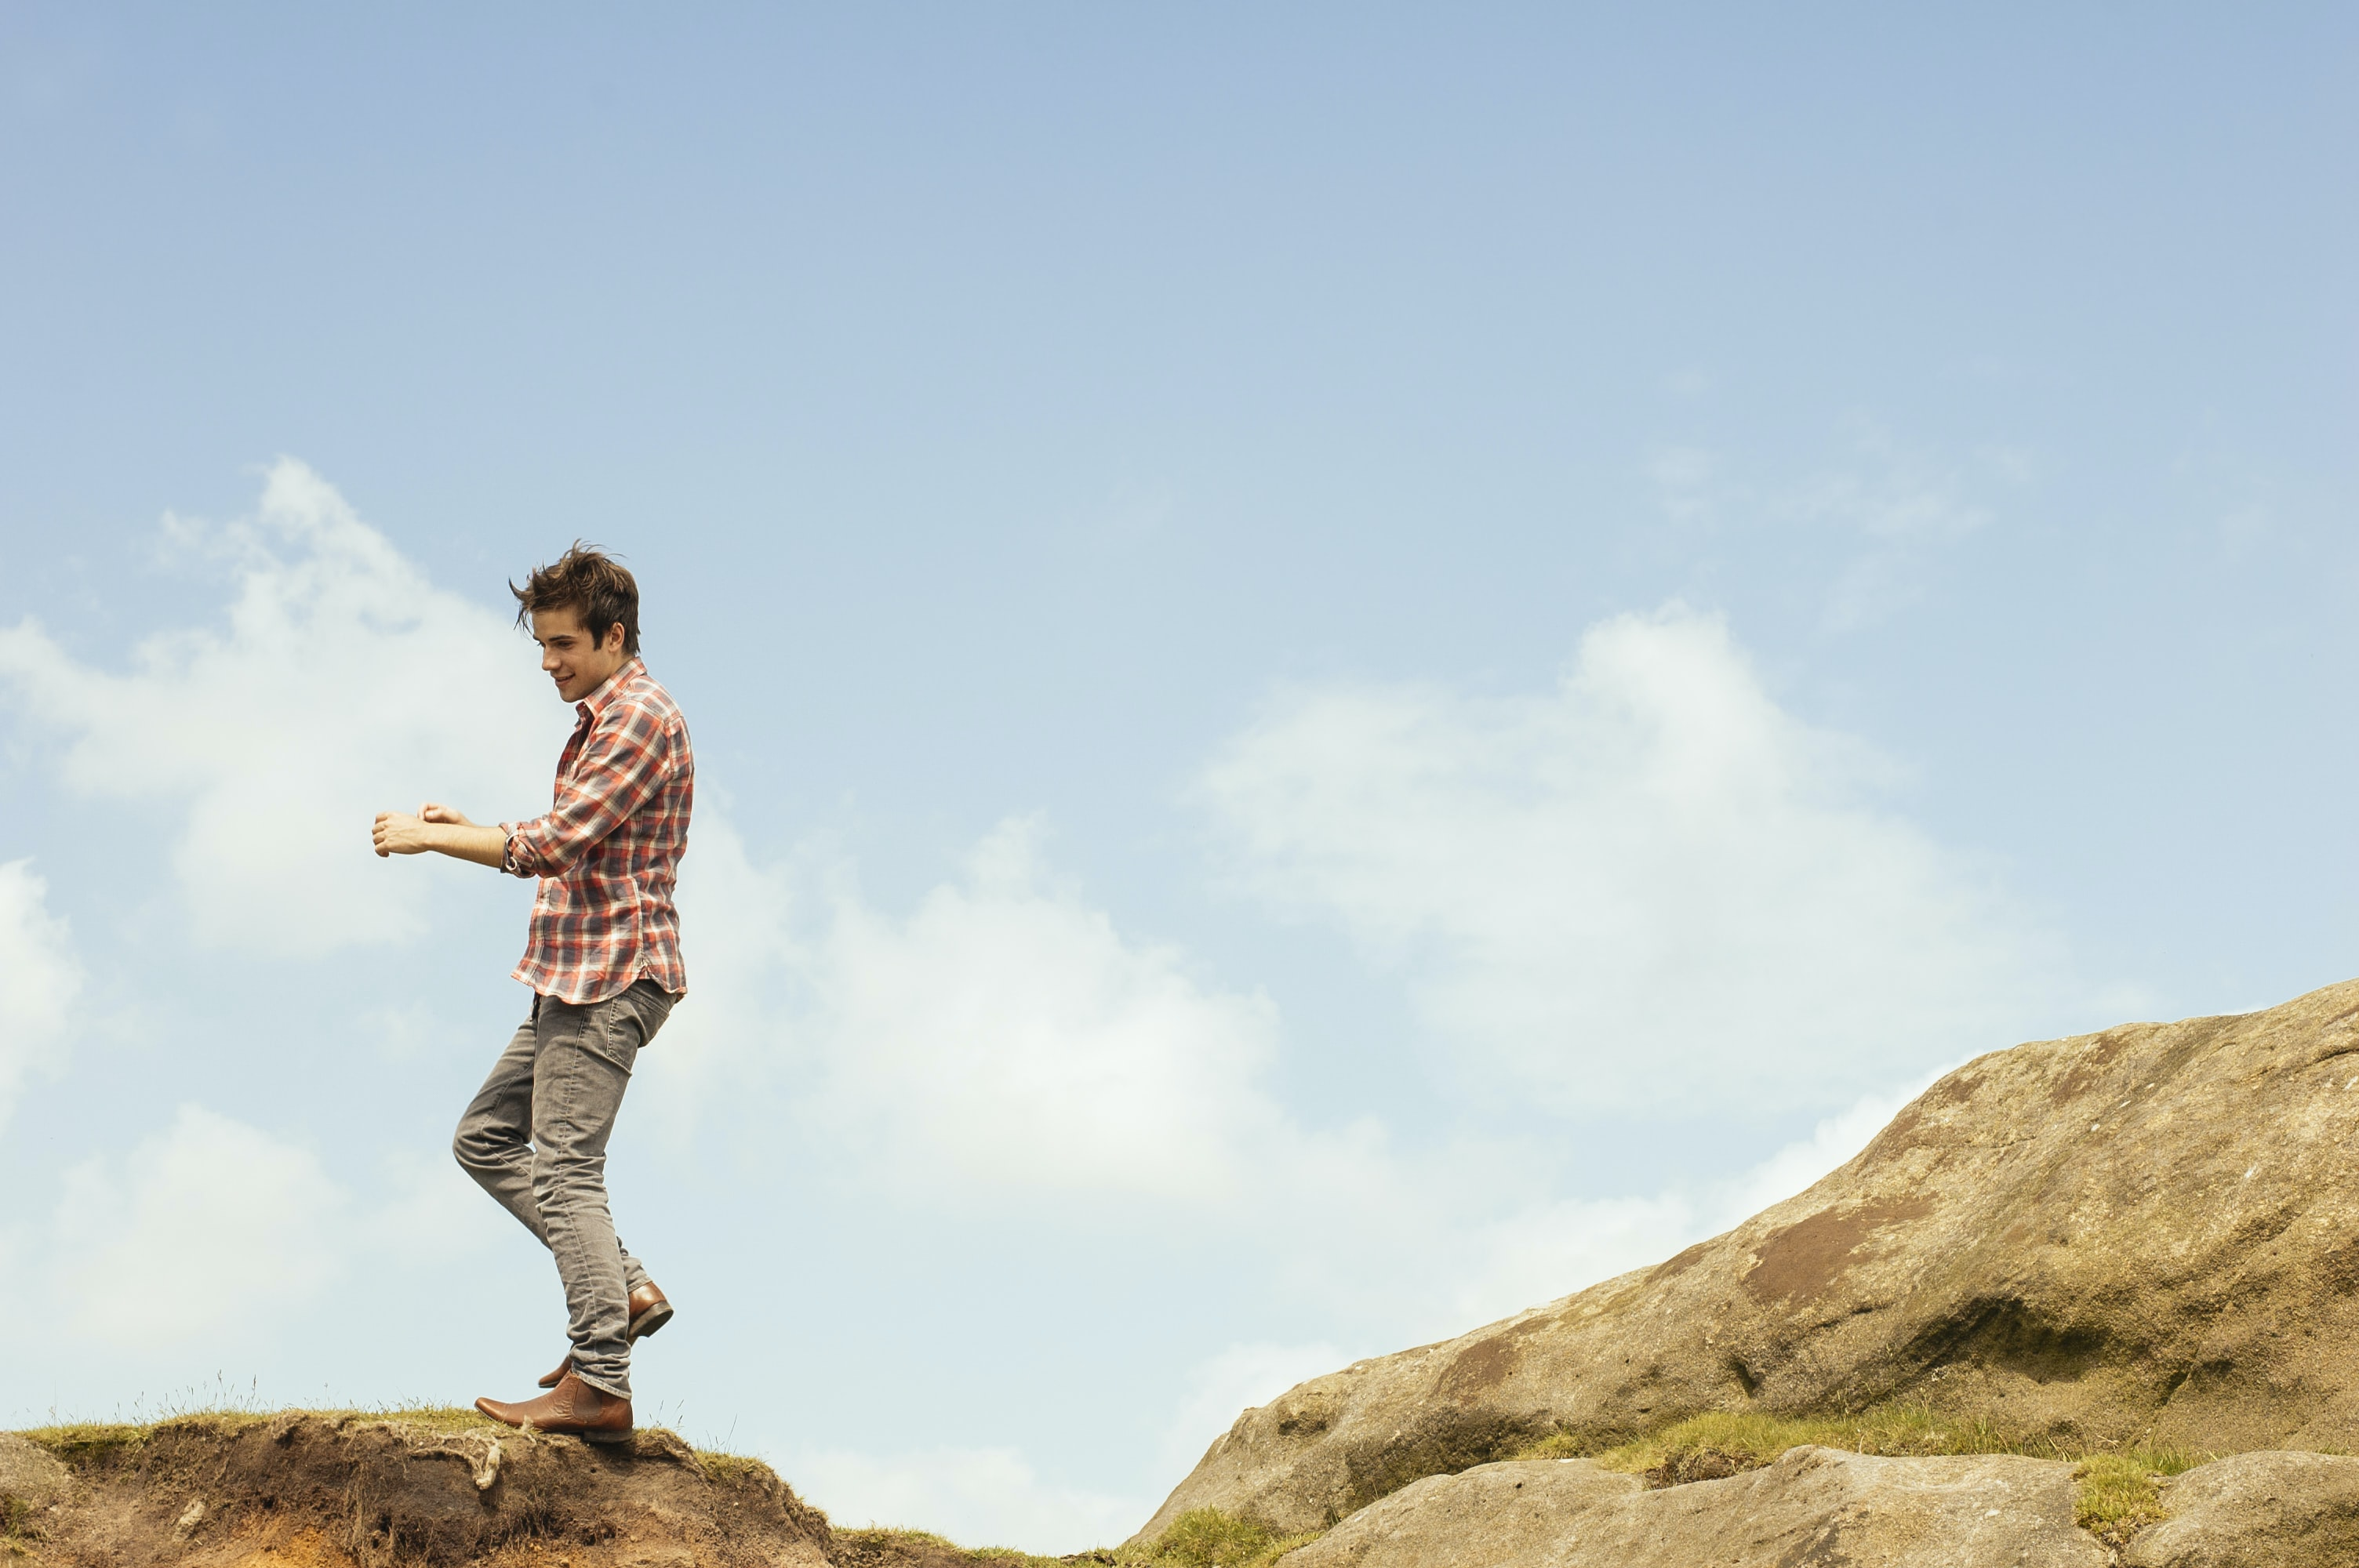 man in red plaid top standing on hilltop during daytime